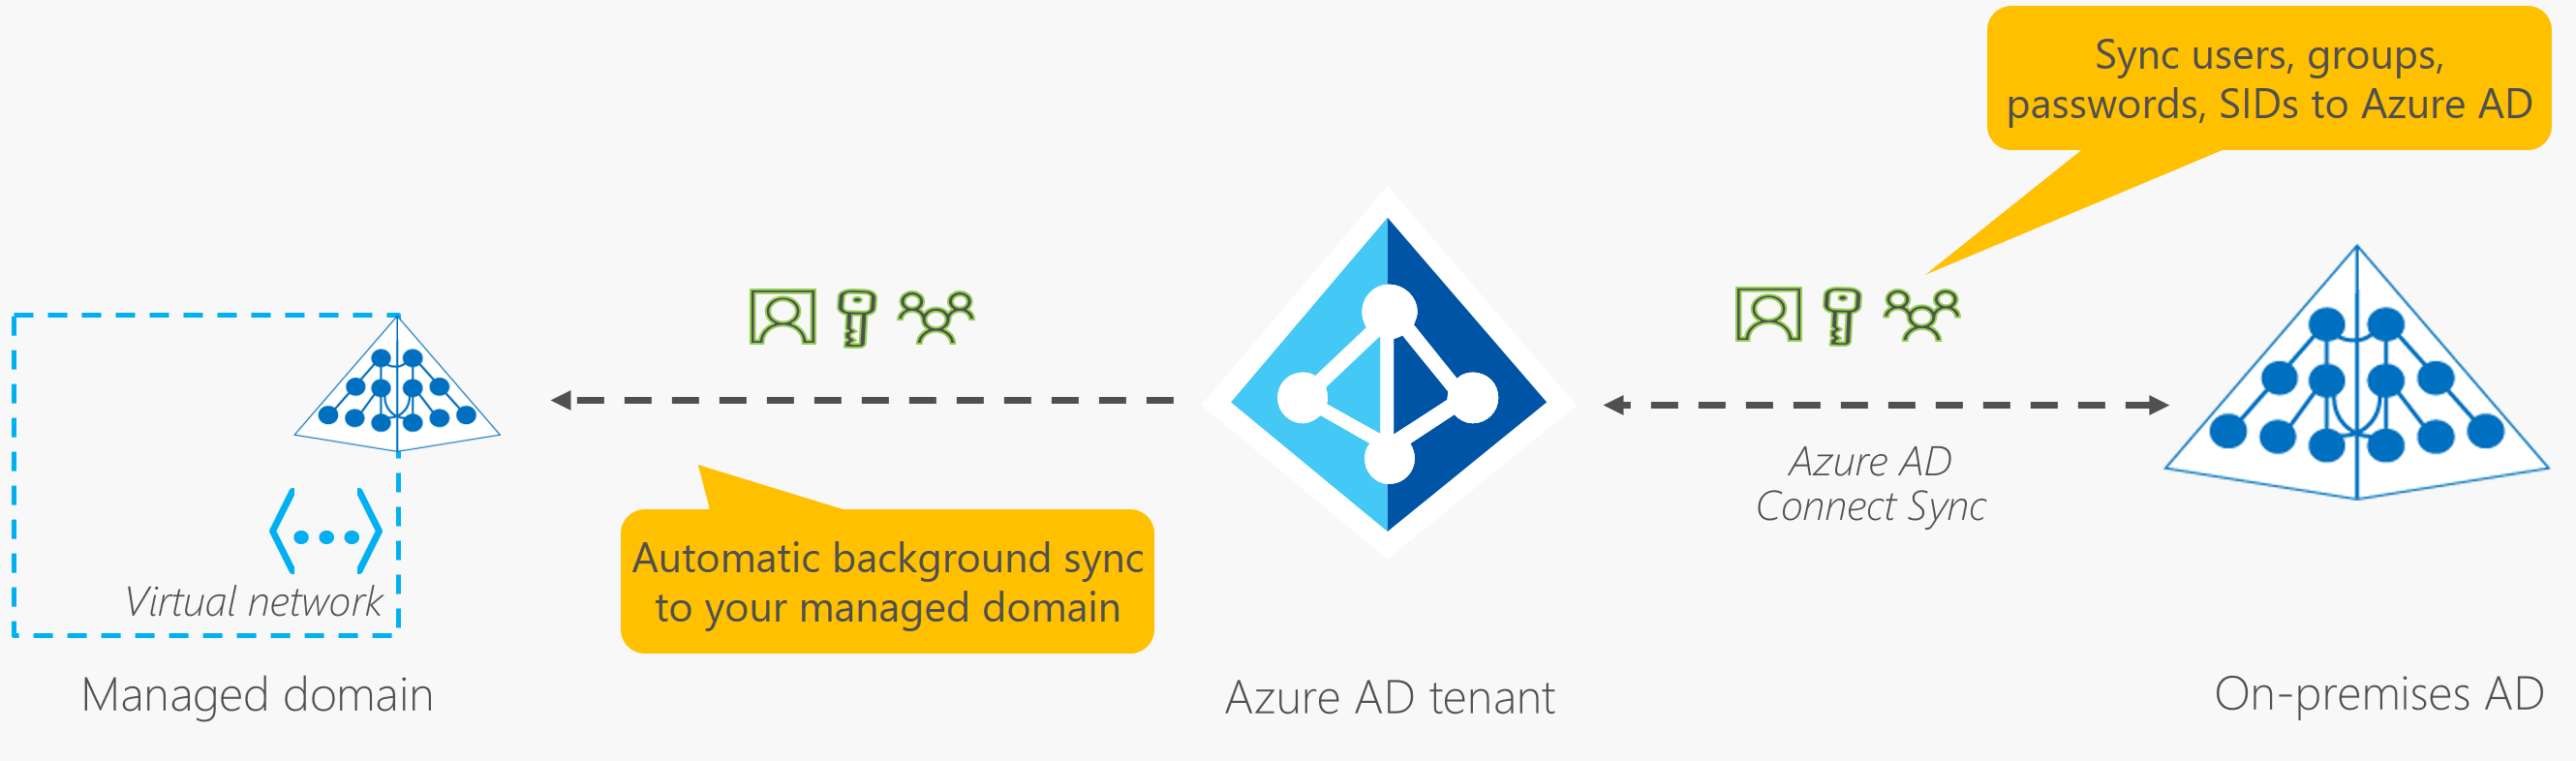 Sincronización en Azure AD Domain Services con Azure AD y Active Directory Domain Services en el entorno local mediante AD Connect